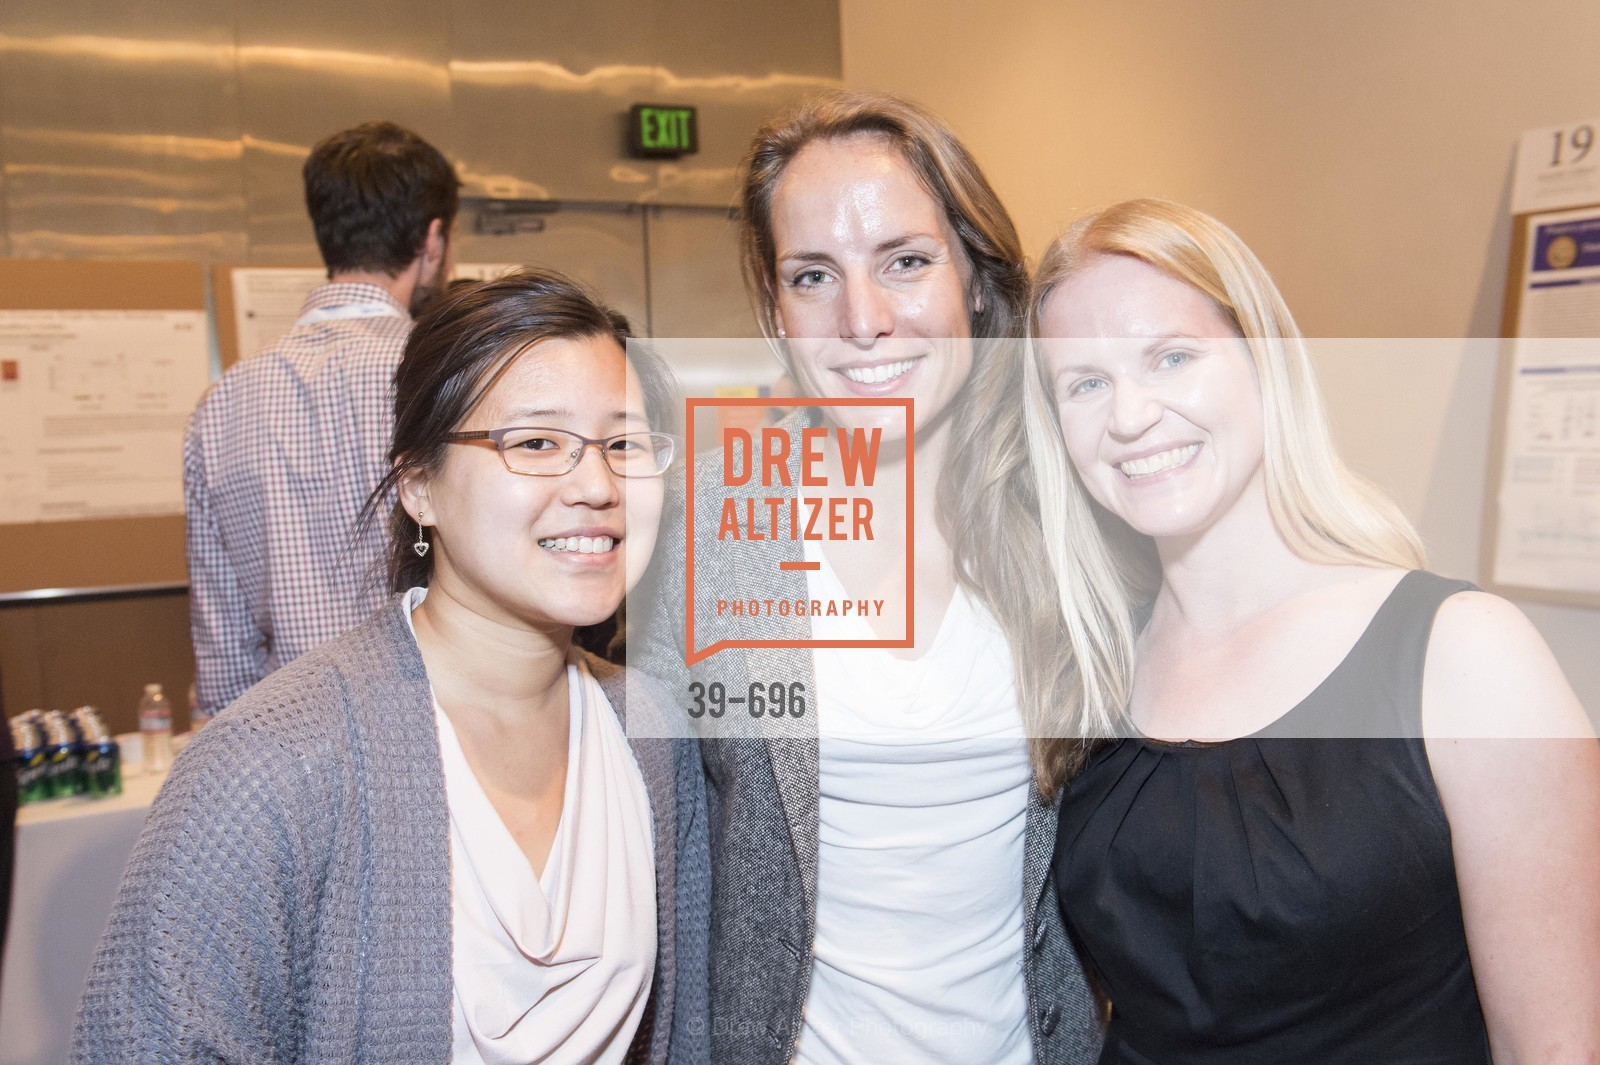 Ann Lee-Barthel, Karine Schaal, Kelly Gravuer, ARCS FOUNDATION Scholar Symposium, US, May 5th, 2015,Drew Altizer, Drew Altizer Photography, full-service agency, private events, San Francisco photographer, photographer california